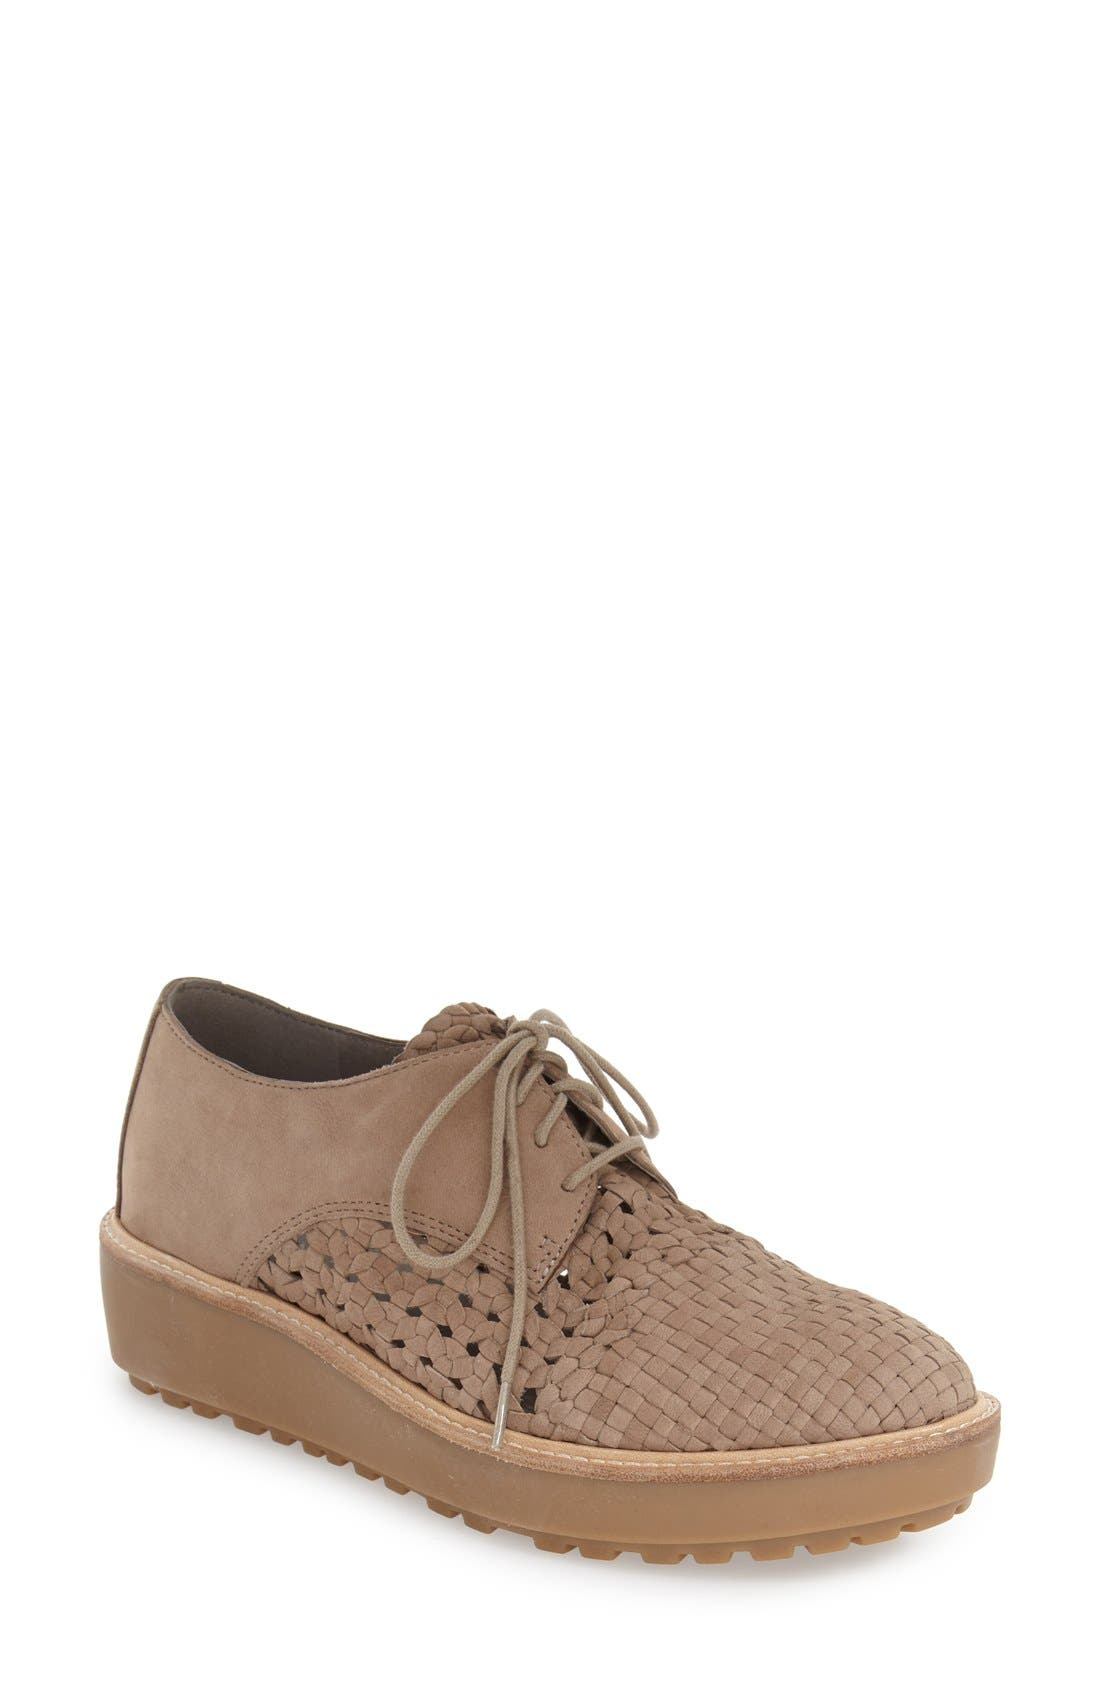 Alternate Image 1 Selected - Eileen Fisher 'Oath' Platform Oxford (Women)